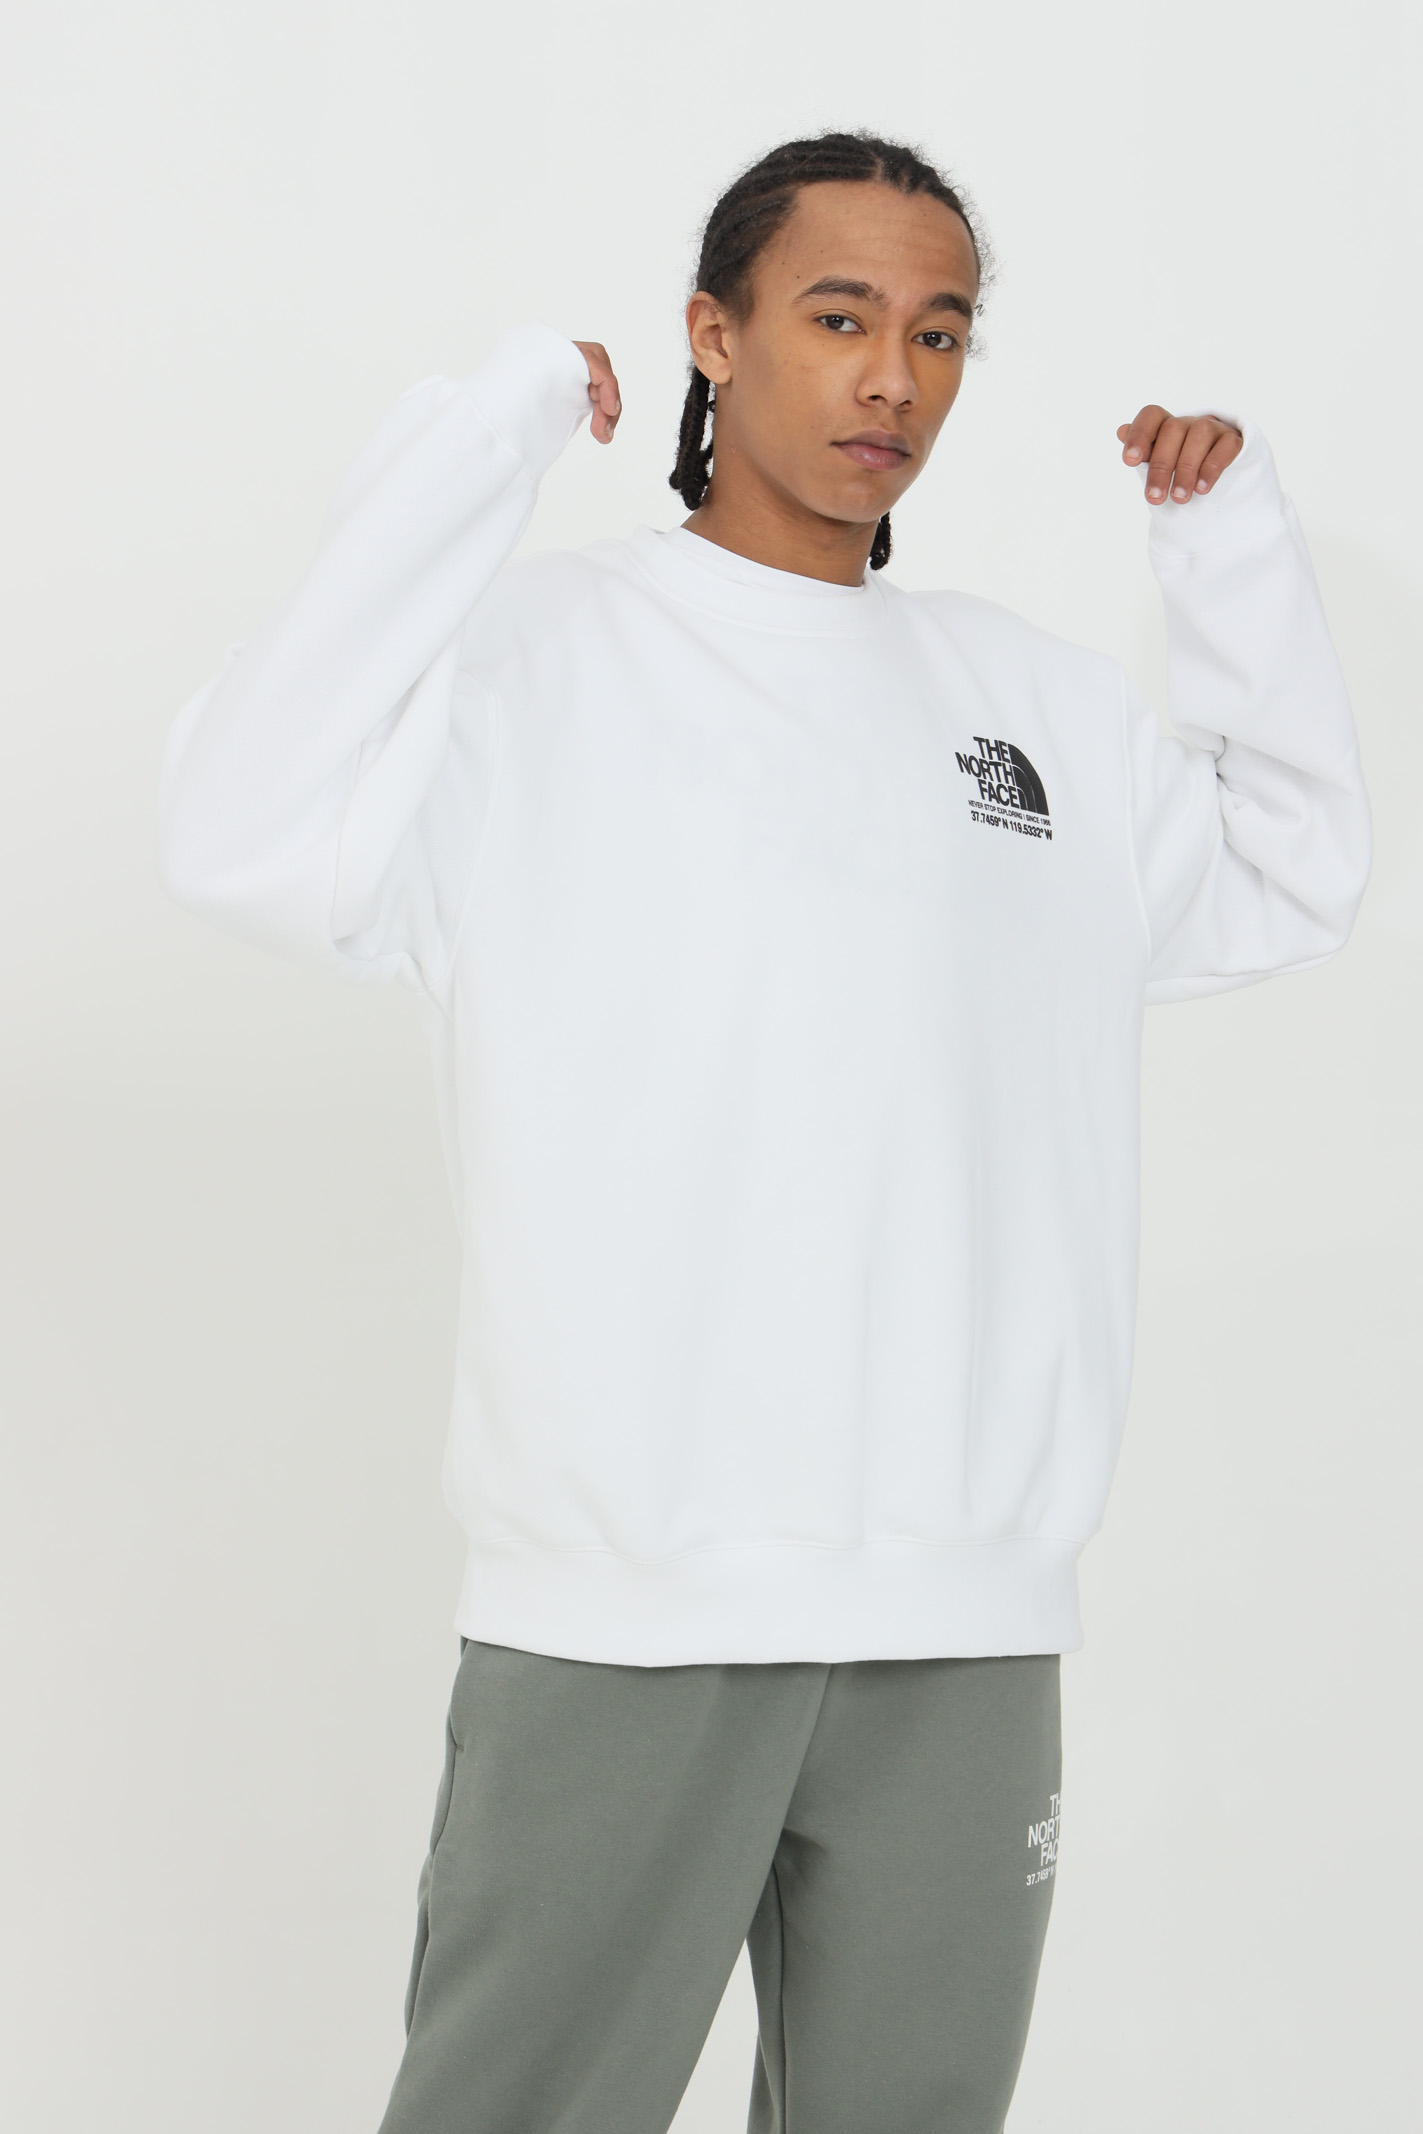 White sweatshirt with print on the back, crew neck. Elastic cuffs and bottom. Comfortable model. The north face  THE NORTH FACE | Sweatshirt | NF0A55MXFN41FN41